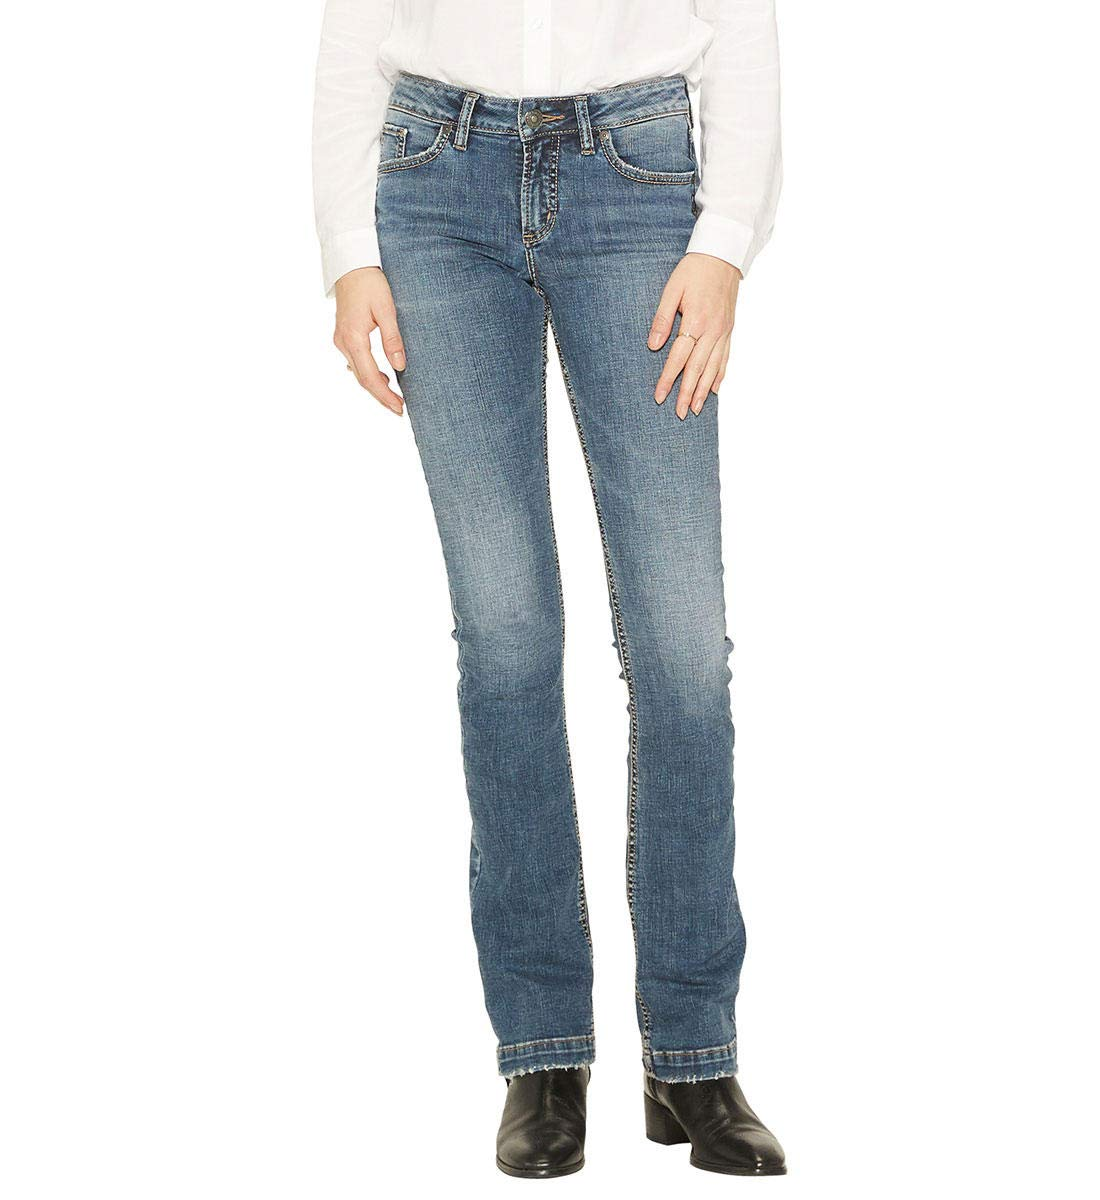 Silver Jeans Co. Women's Elyse Relaxed Fit Mid Rise Slim Bootcut Jeans Silver Jeans Juniors L03601SSX415